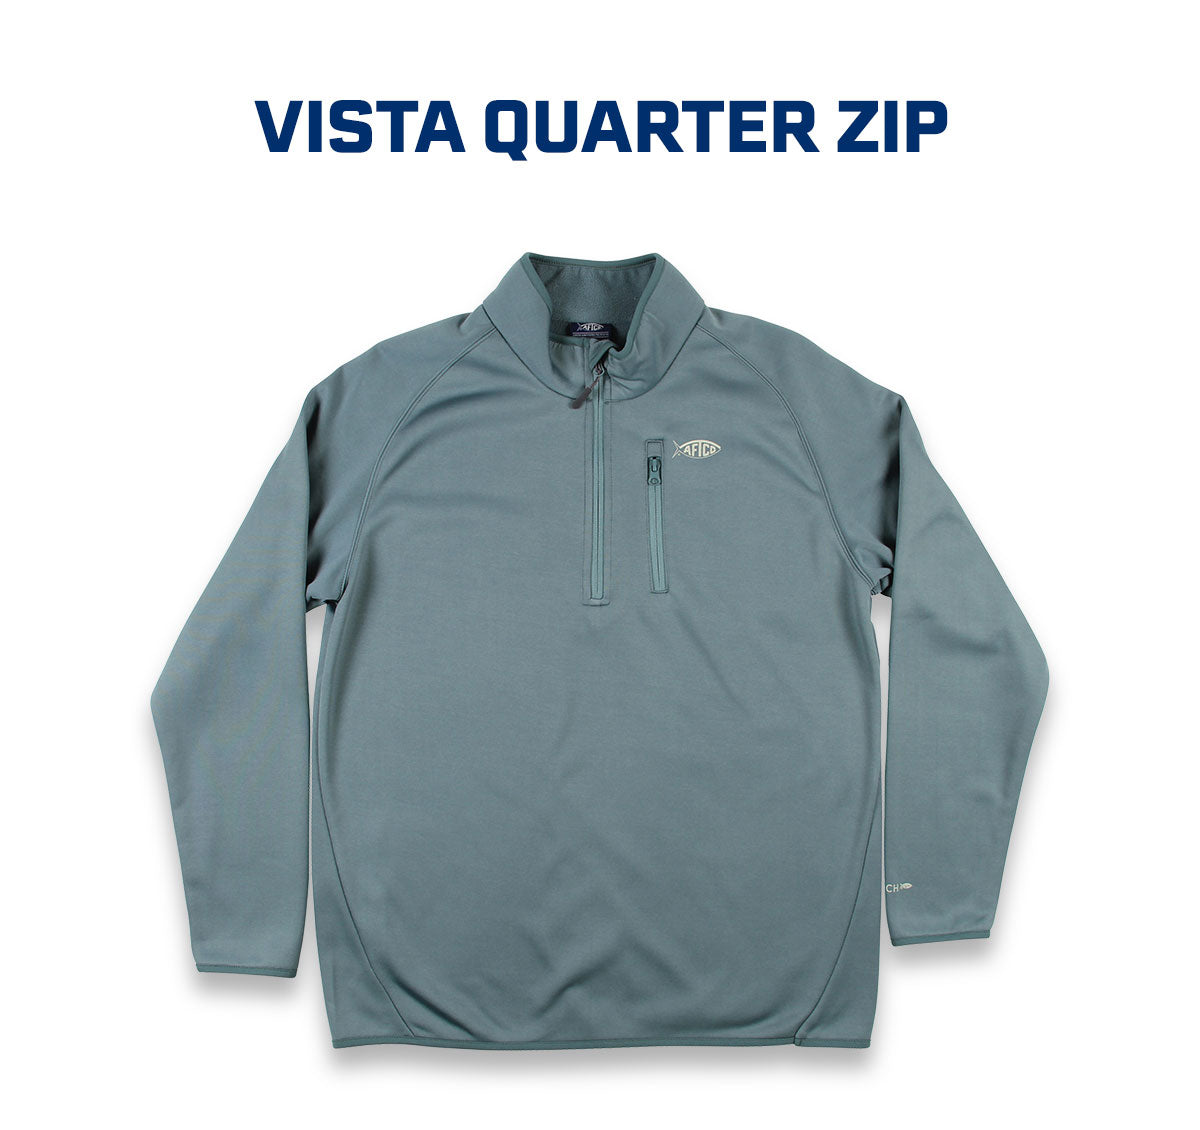 Vista Quarter Zip Technical Fleece